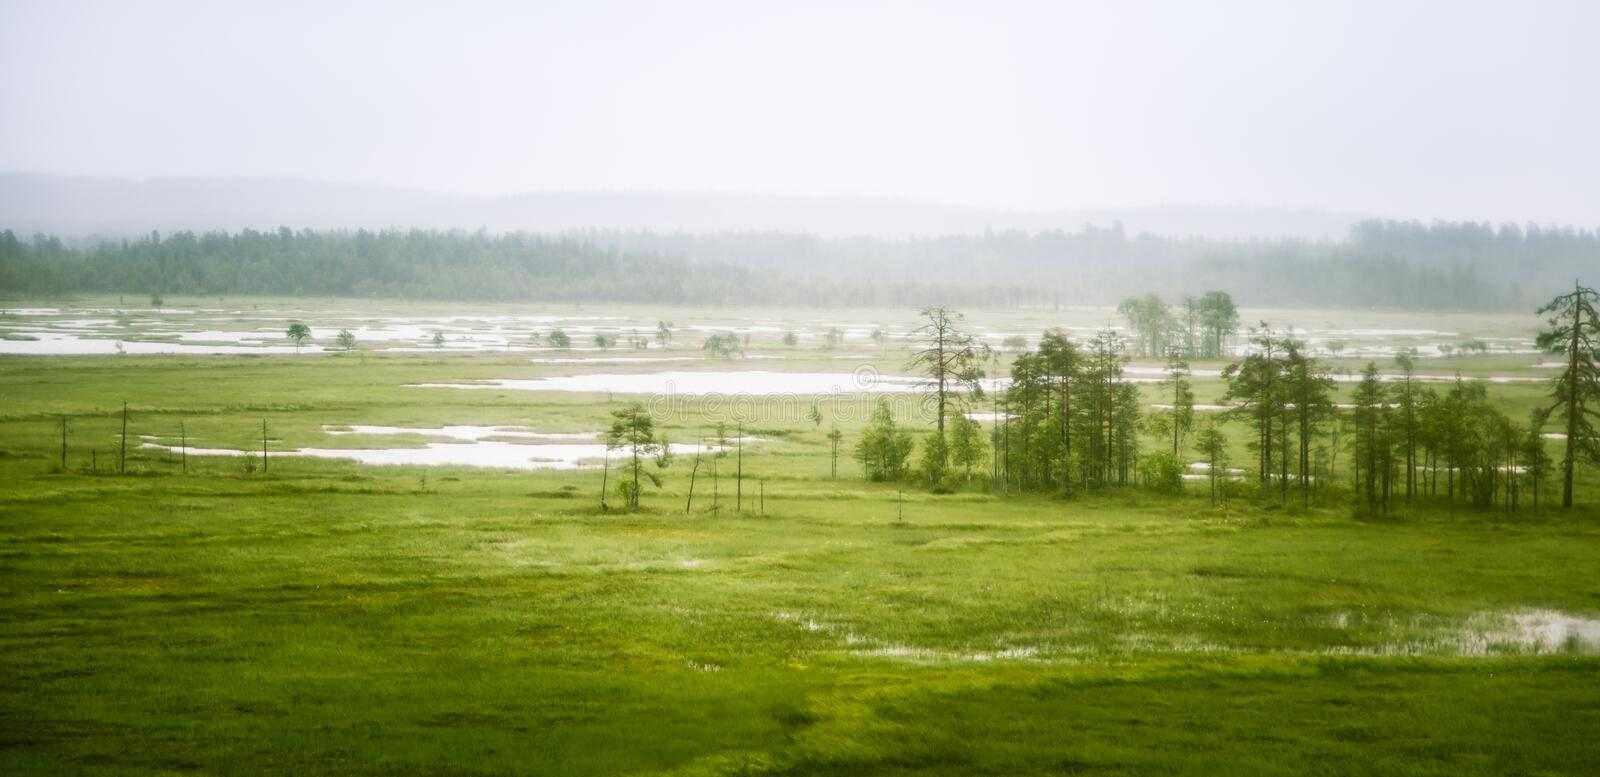 A beautiful mire landscape in Finland - dreamy, foggy look royalty free stock photography